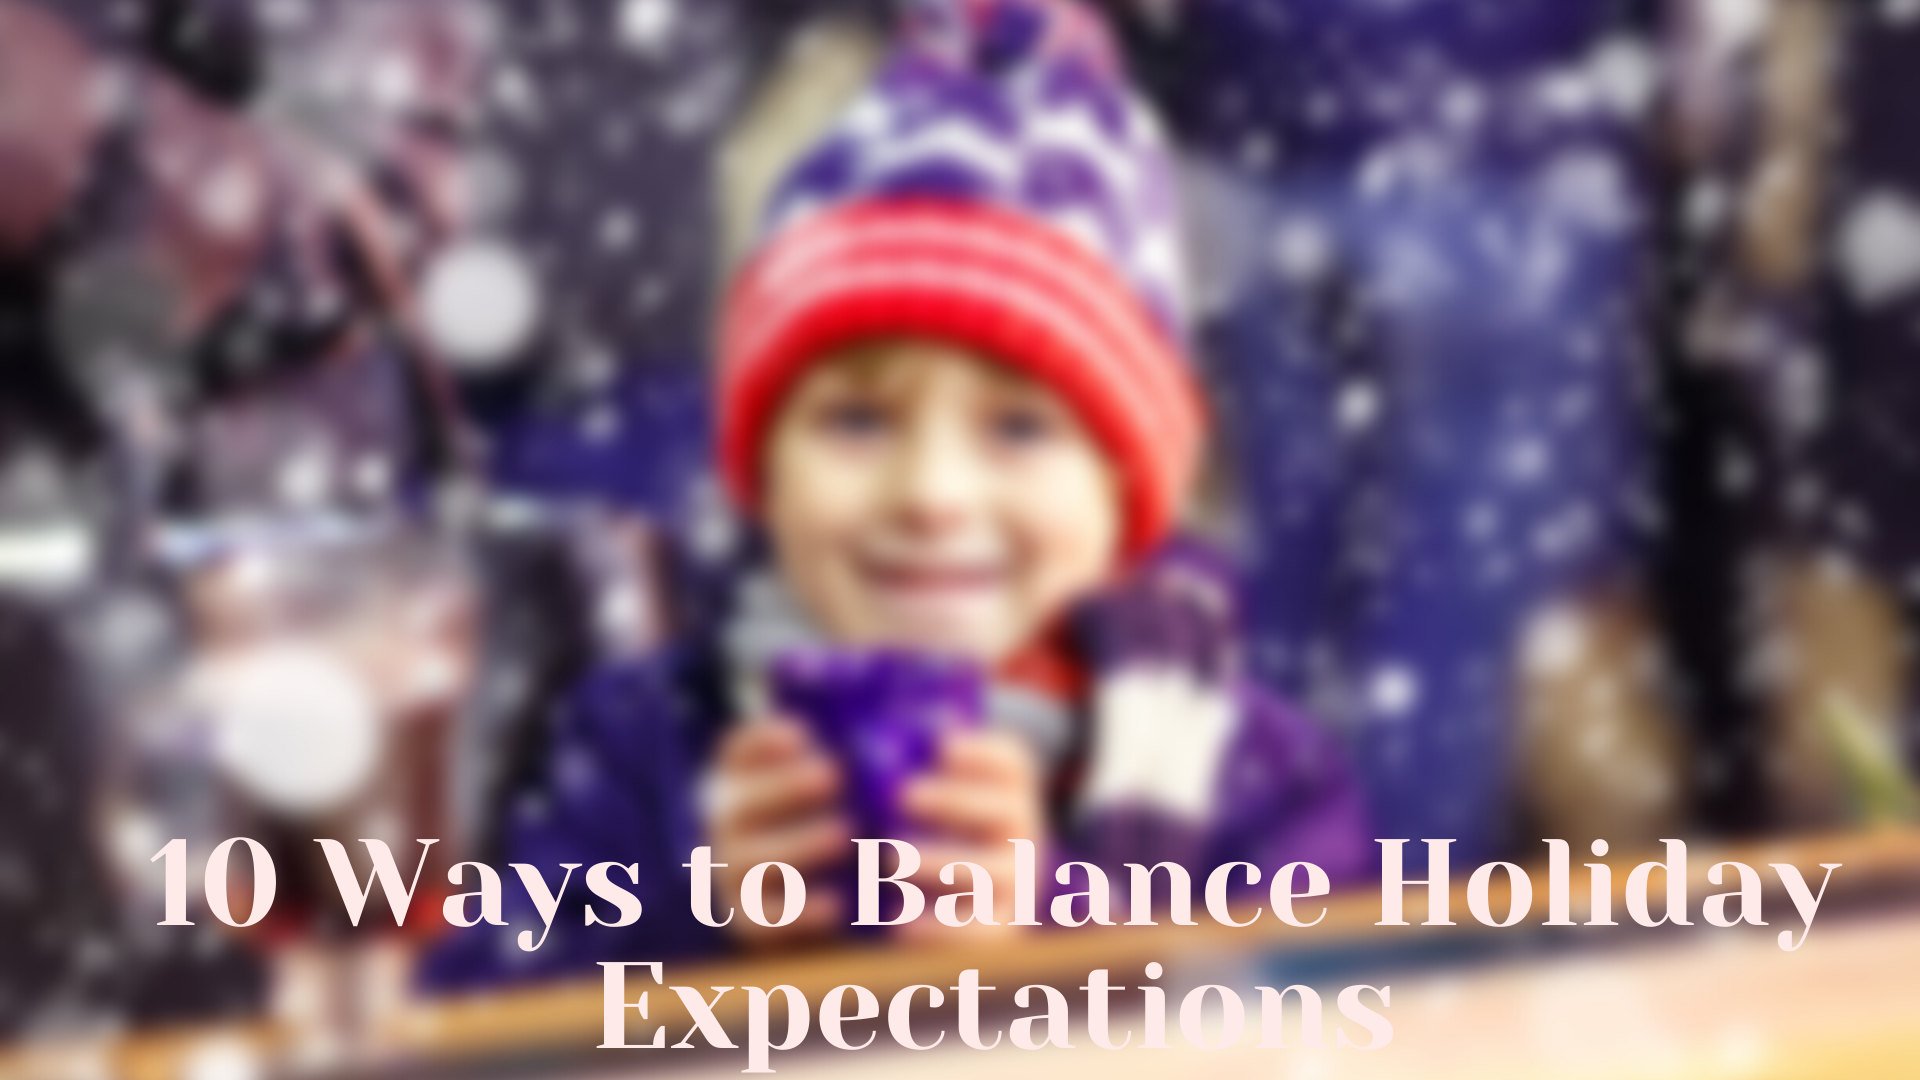 10 Ways to Balance Holiday Expectations